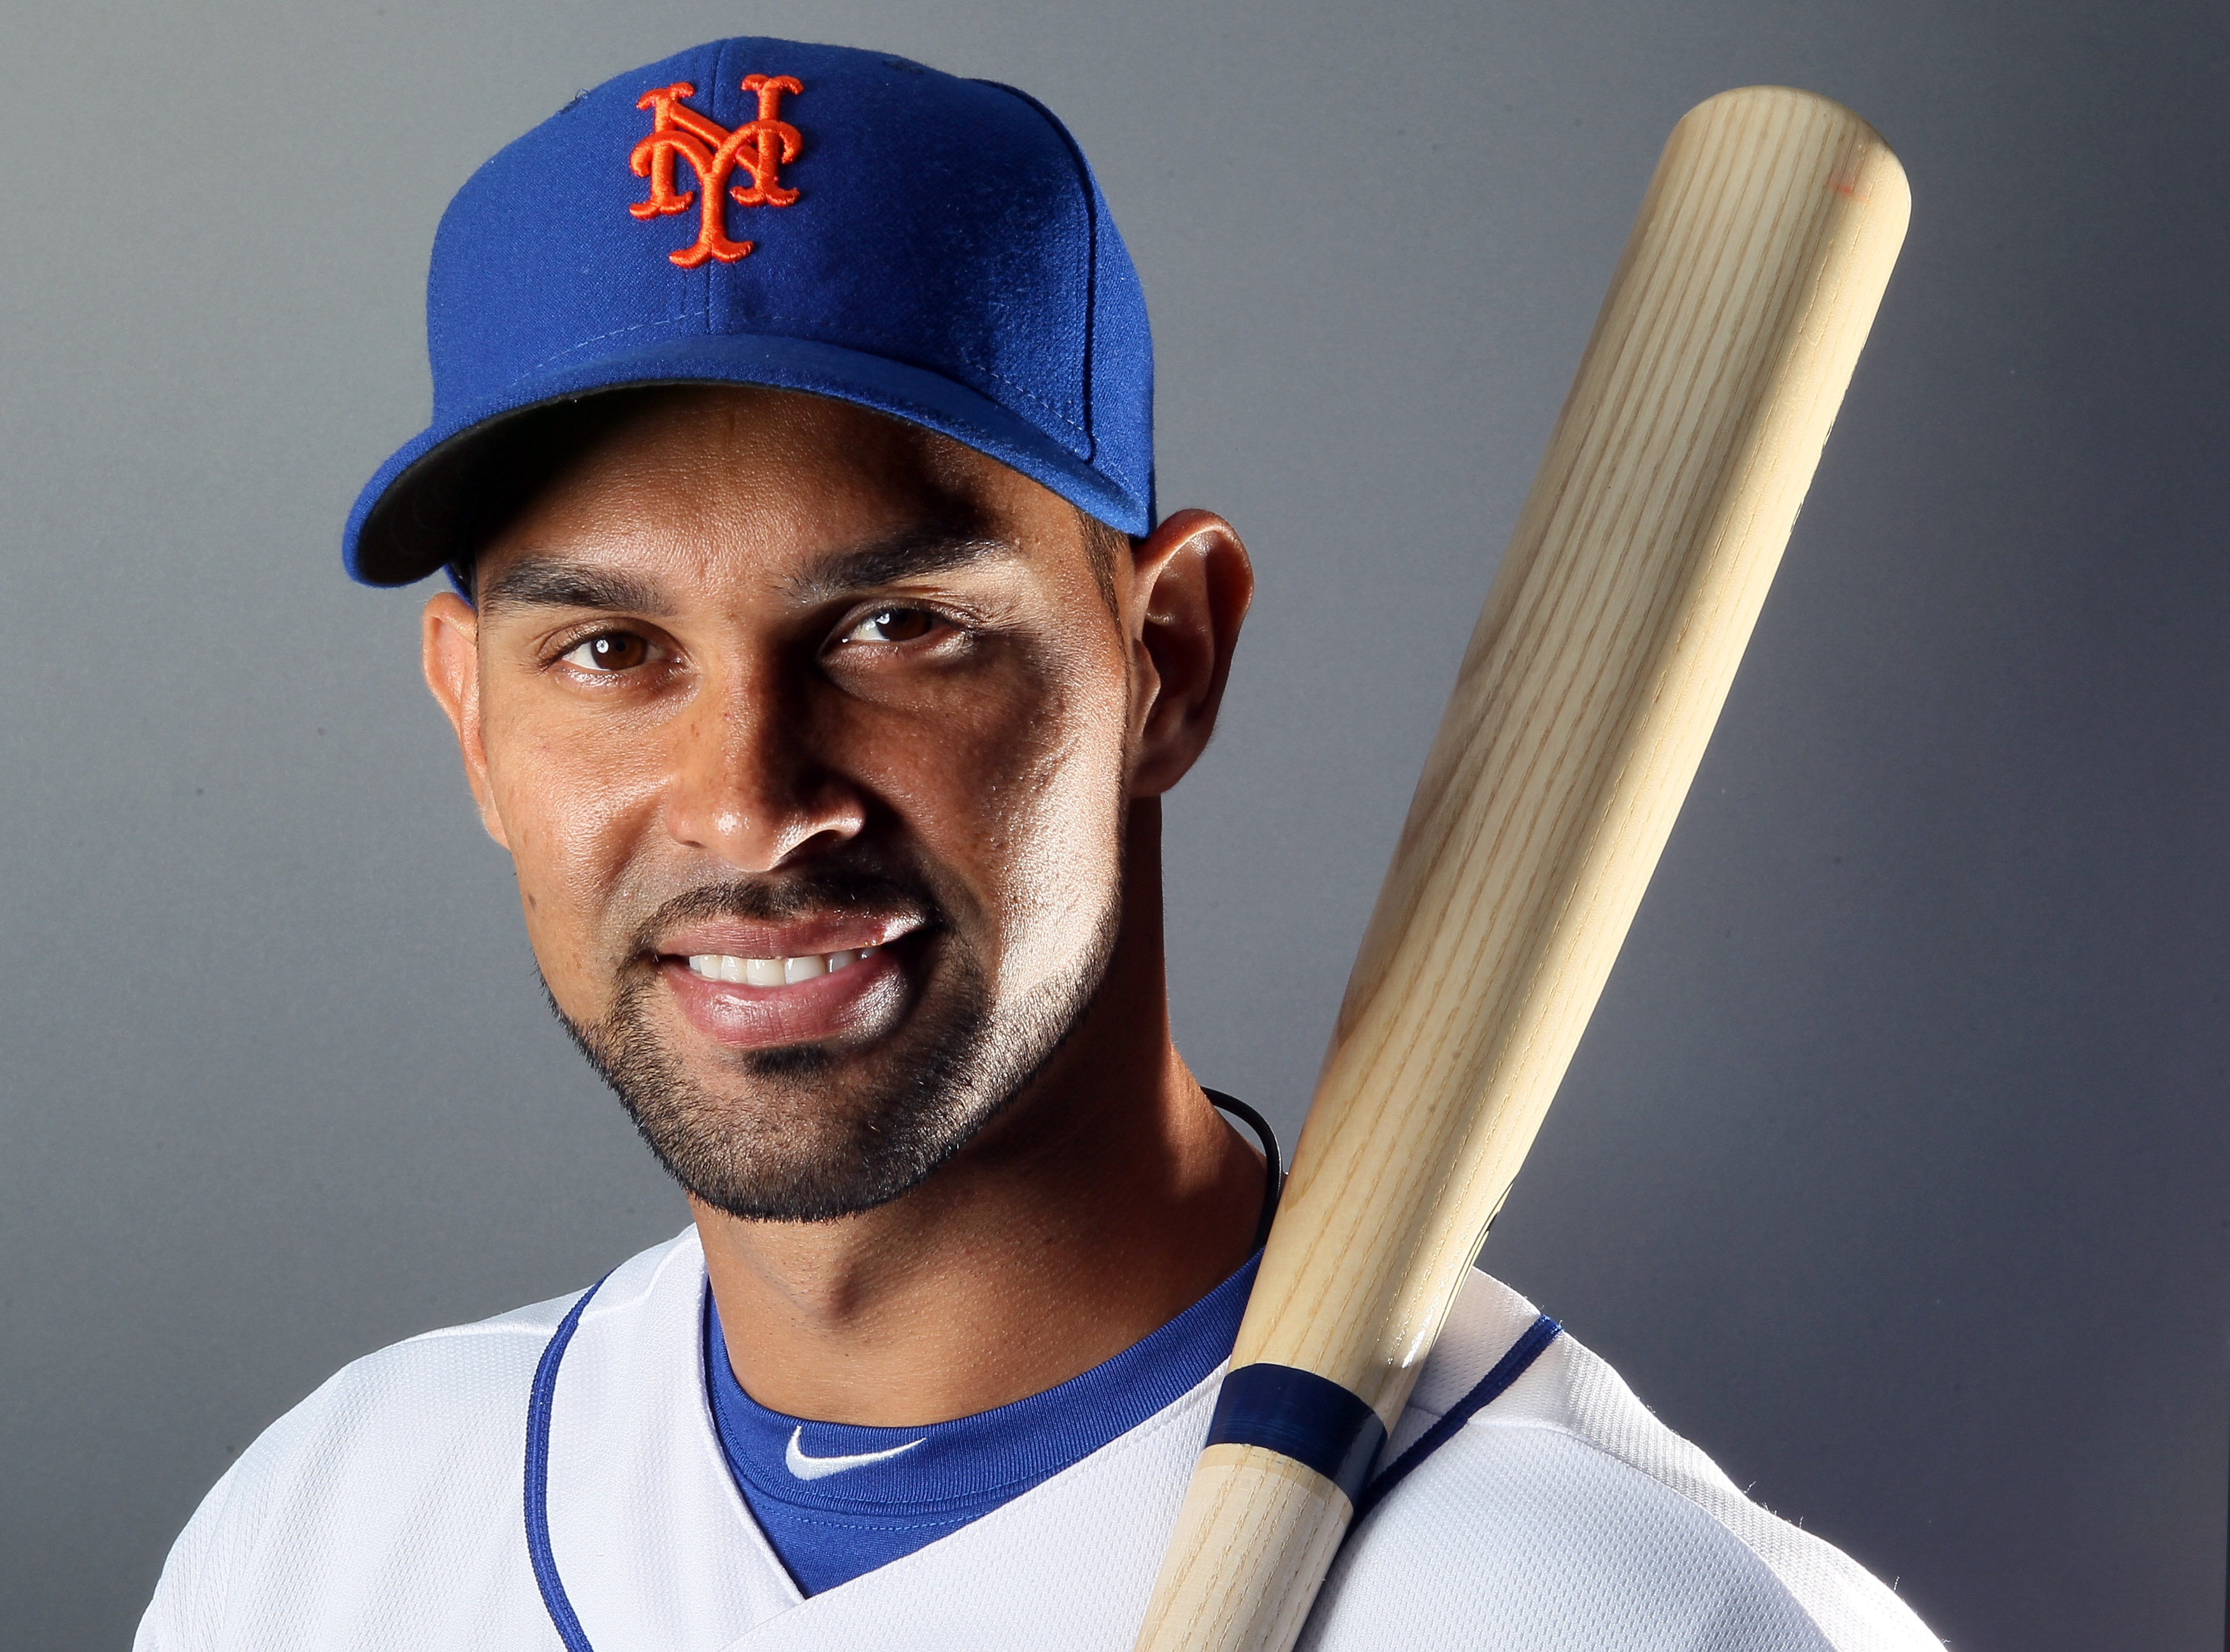 PORT ST. LUCIE, FL - FEBRUARY 24:  RY 24:  RY 24:  Angel Pagan #16 of the New York Mets poses for a portrait during the New York Mets Photo Day on February 24, 2011 at Digital Domain Park in Port St. Lucie, Florida.  (Photo by Elsa/Getty Images)